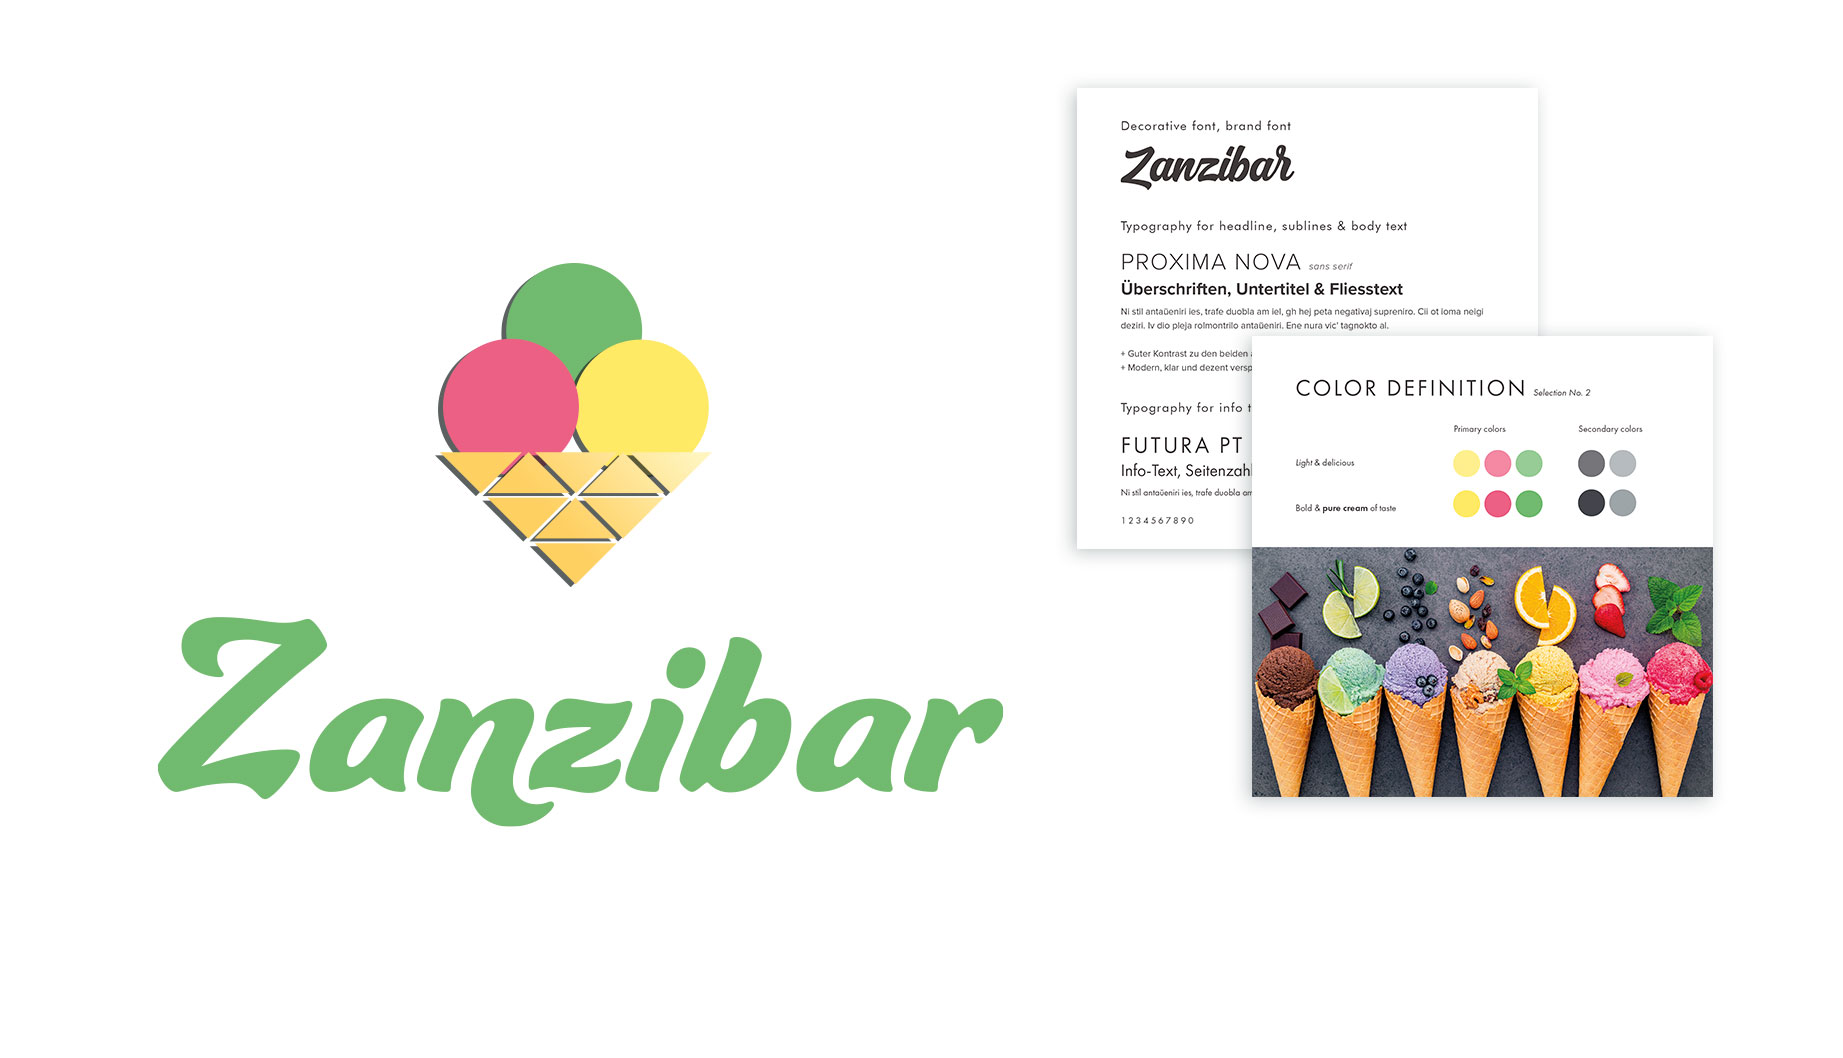 Zanzibar - Art Director - Corporate Identity - Corporate Text and Design - Brand Concept - Final Art